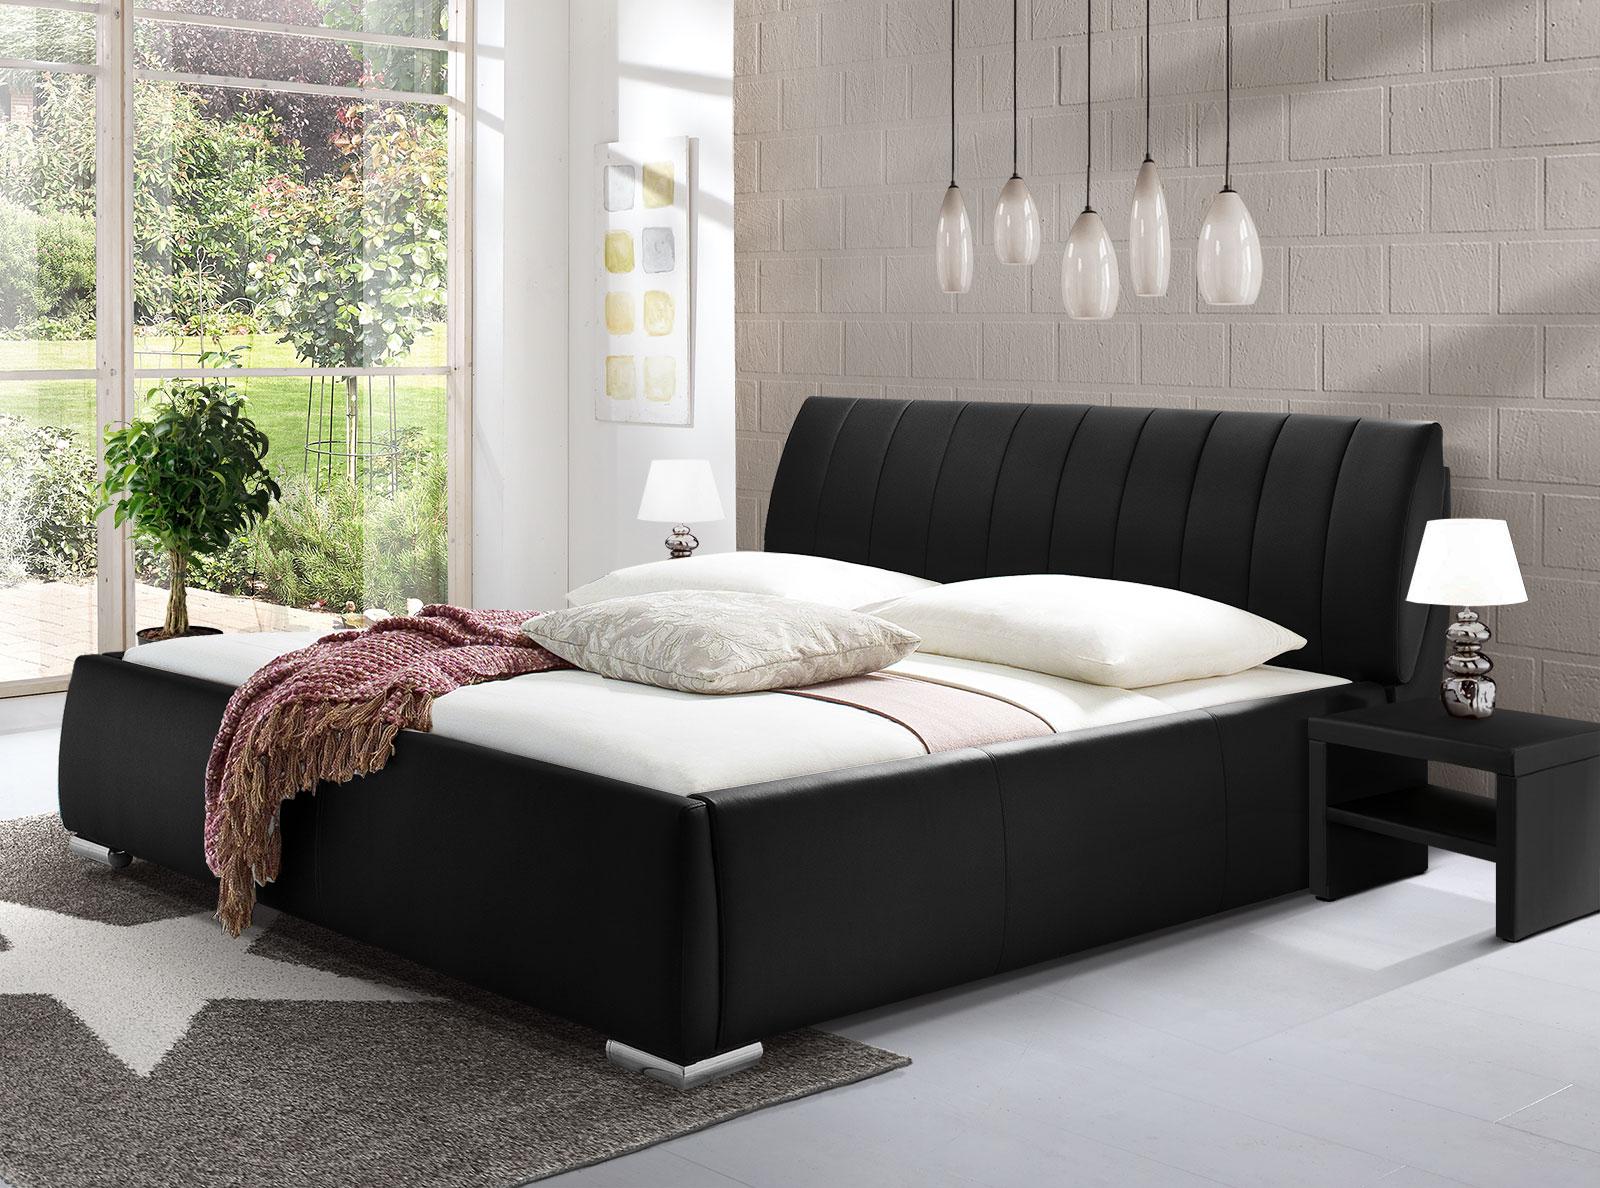 kunstlederbett mit bettkasten und lattenrost lewdown. Black Bedroom Furniture Sets. Home Design Ideas